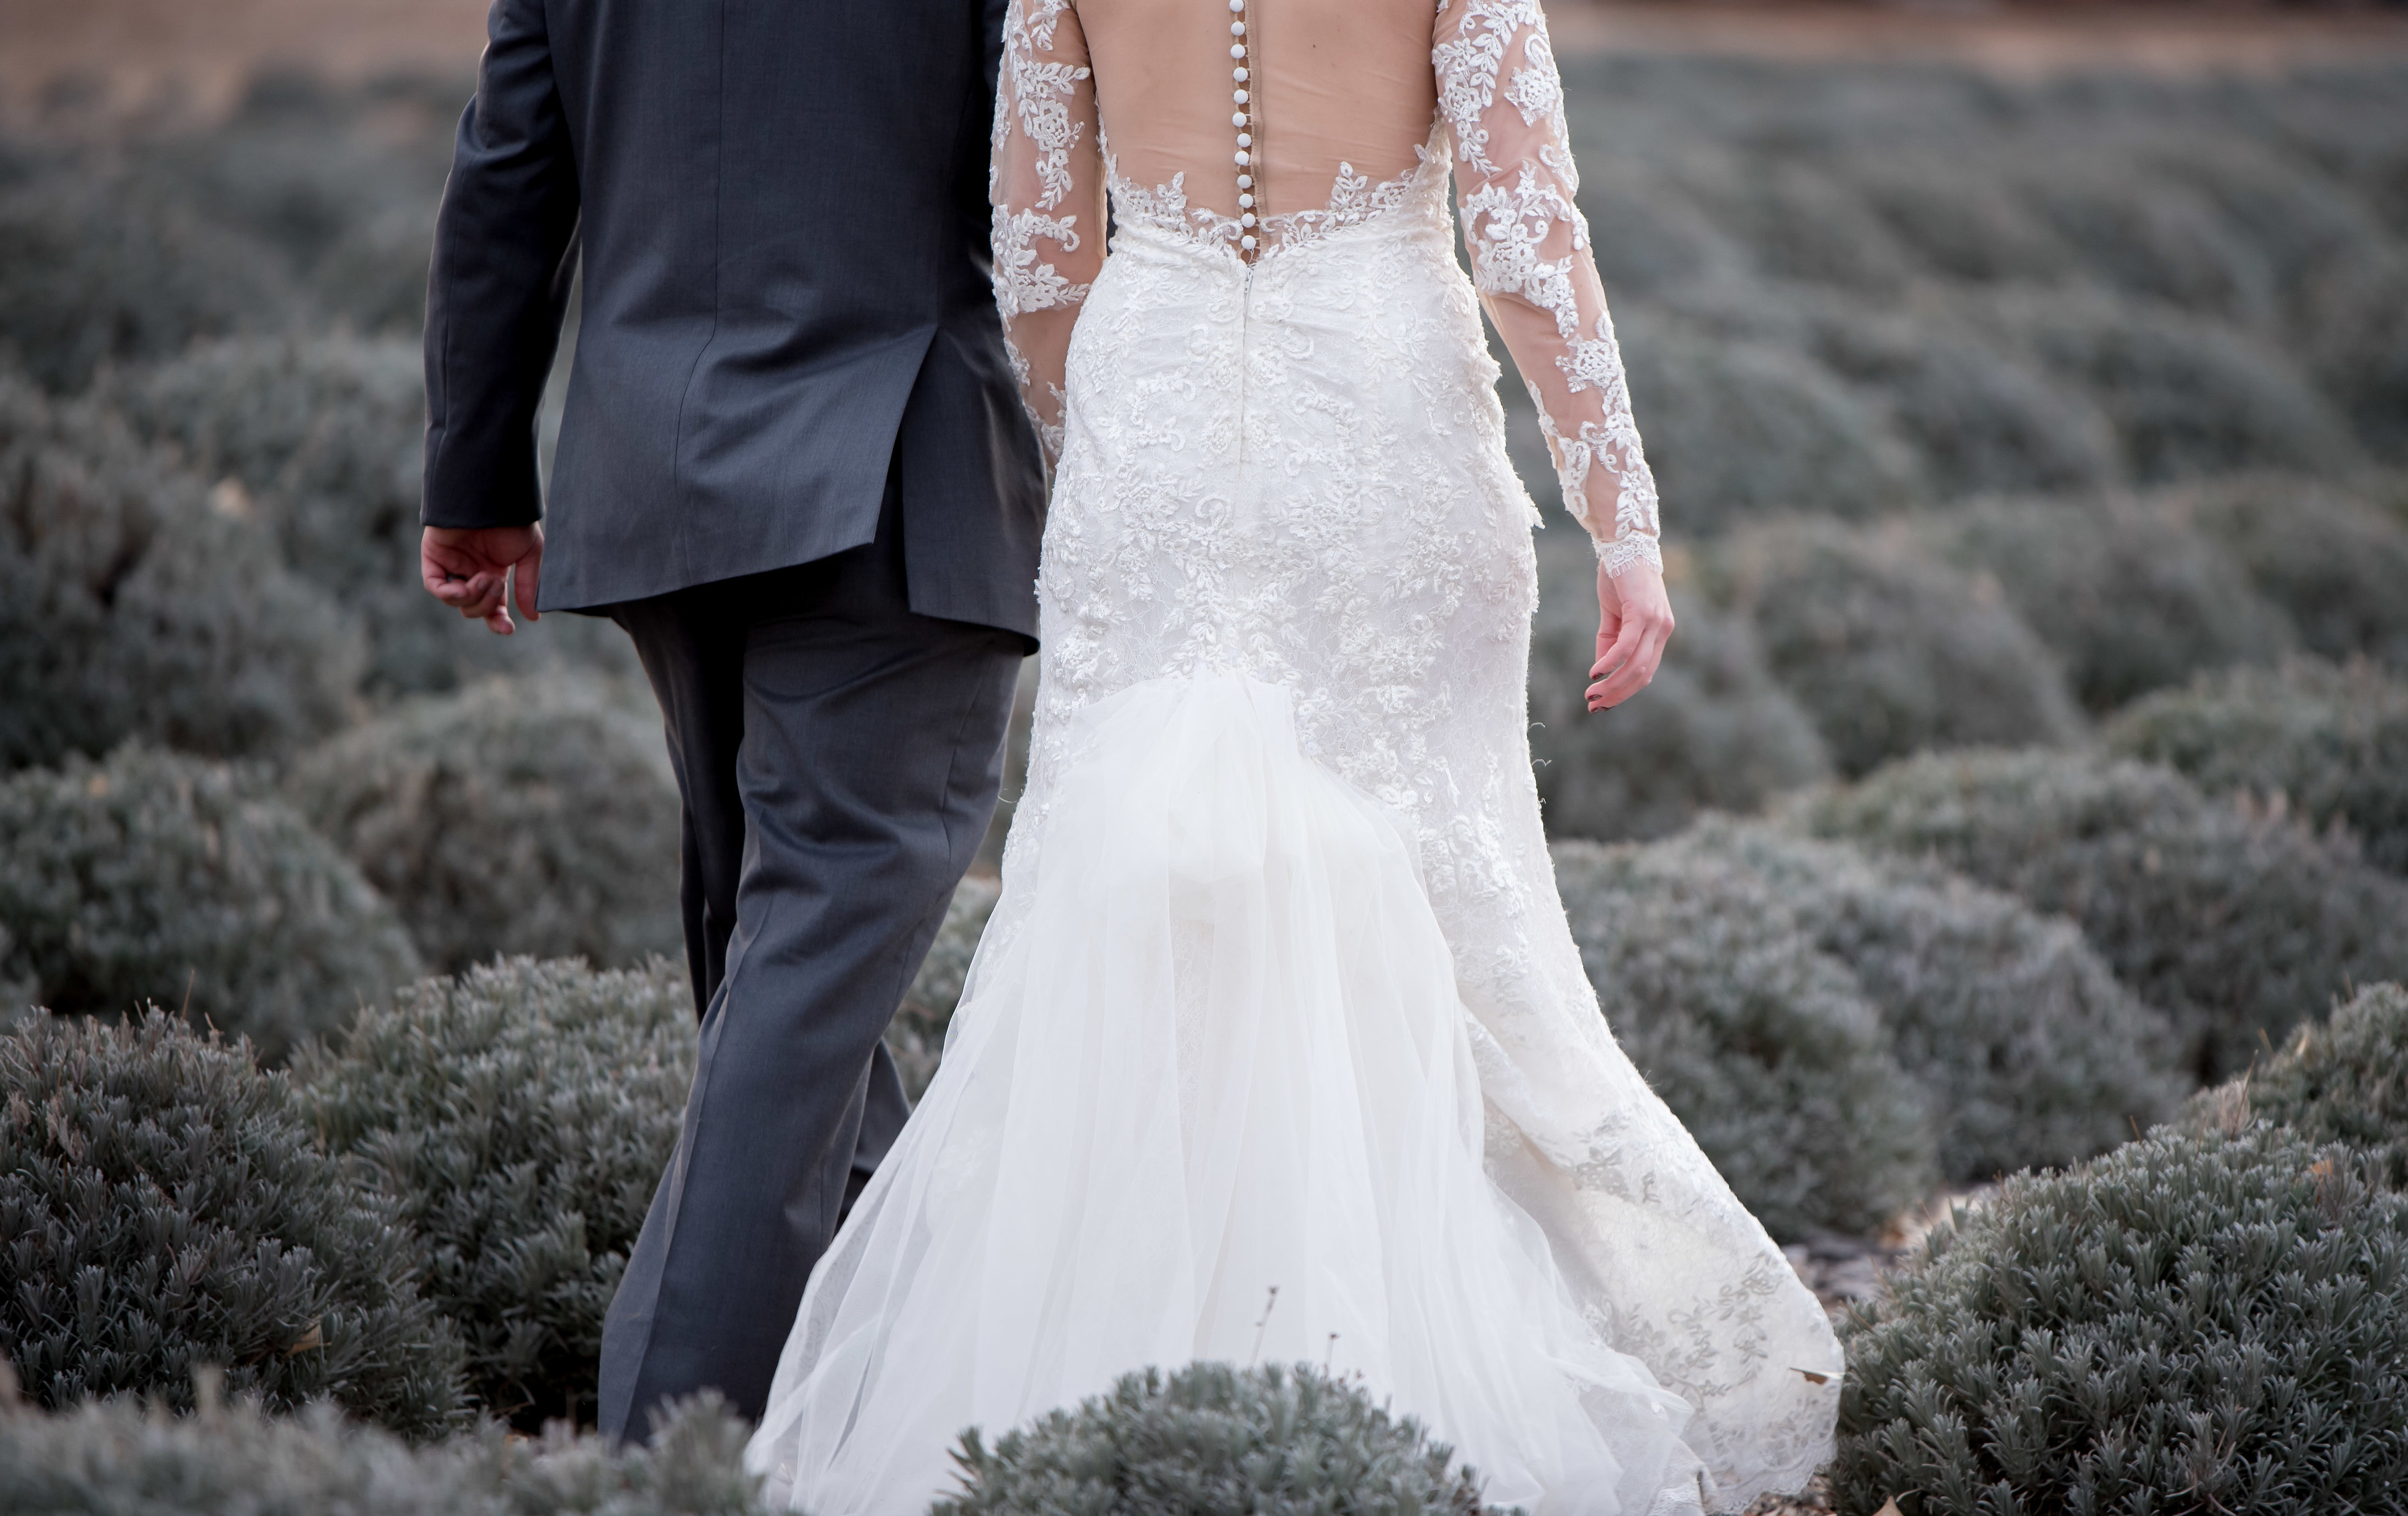 wedding planning design decor inspo real local New Mexico Perfect Wedding Guide lavender outdoor couple romantic professional back gown lace sheer longsleeve suit tux natural light love bride groom